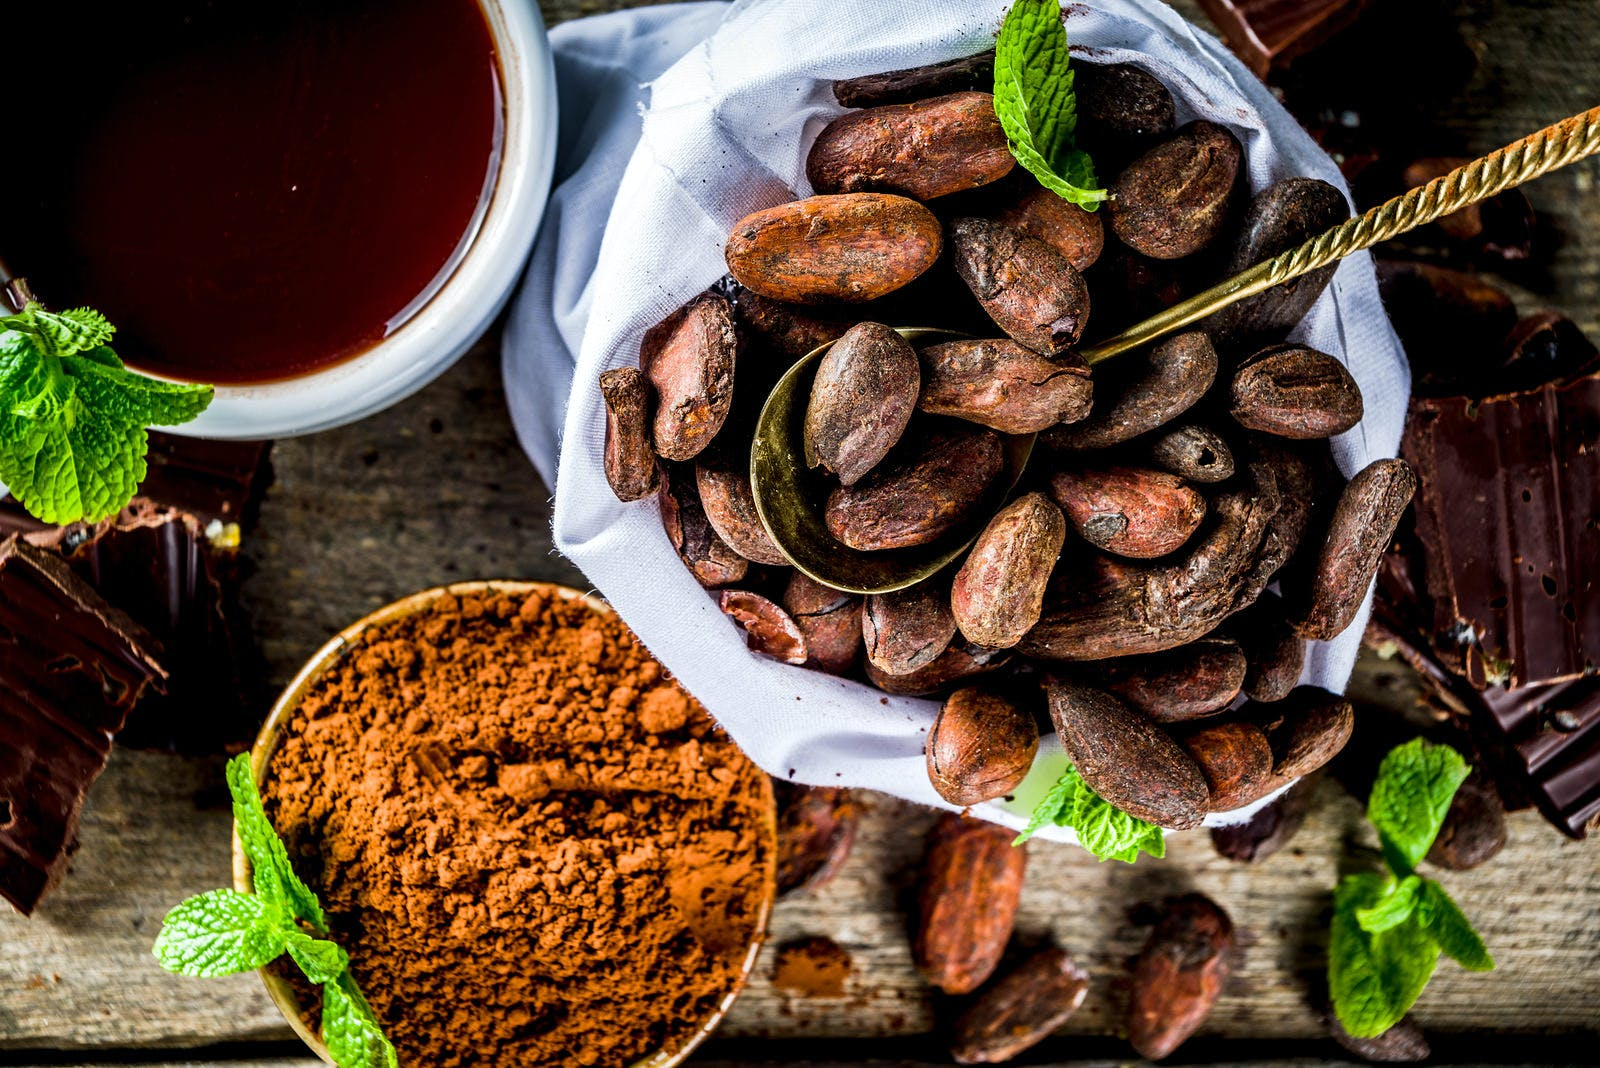 Different conditions of cocoa. Various cocoa – beans, beans, ground, crushed cocoa powder, chocolate paste, chocolate pieces and hot chocolate in a cup. On a wooden rustic background with copy space for text